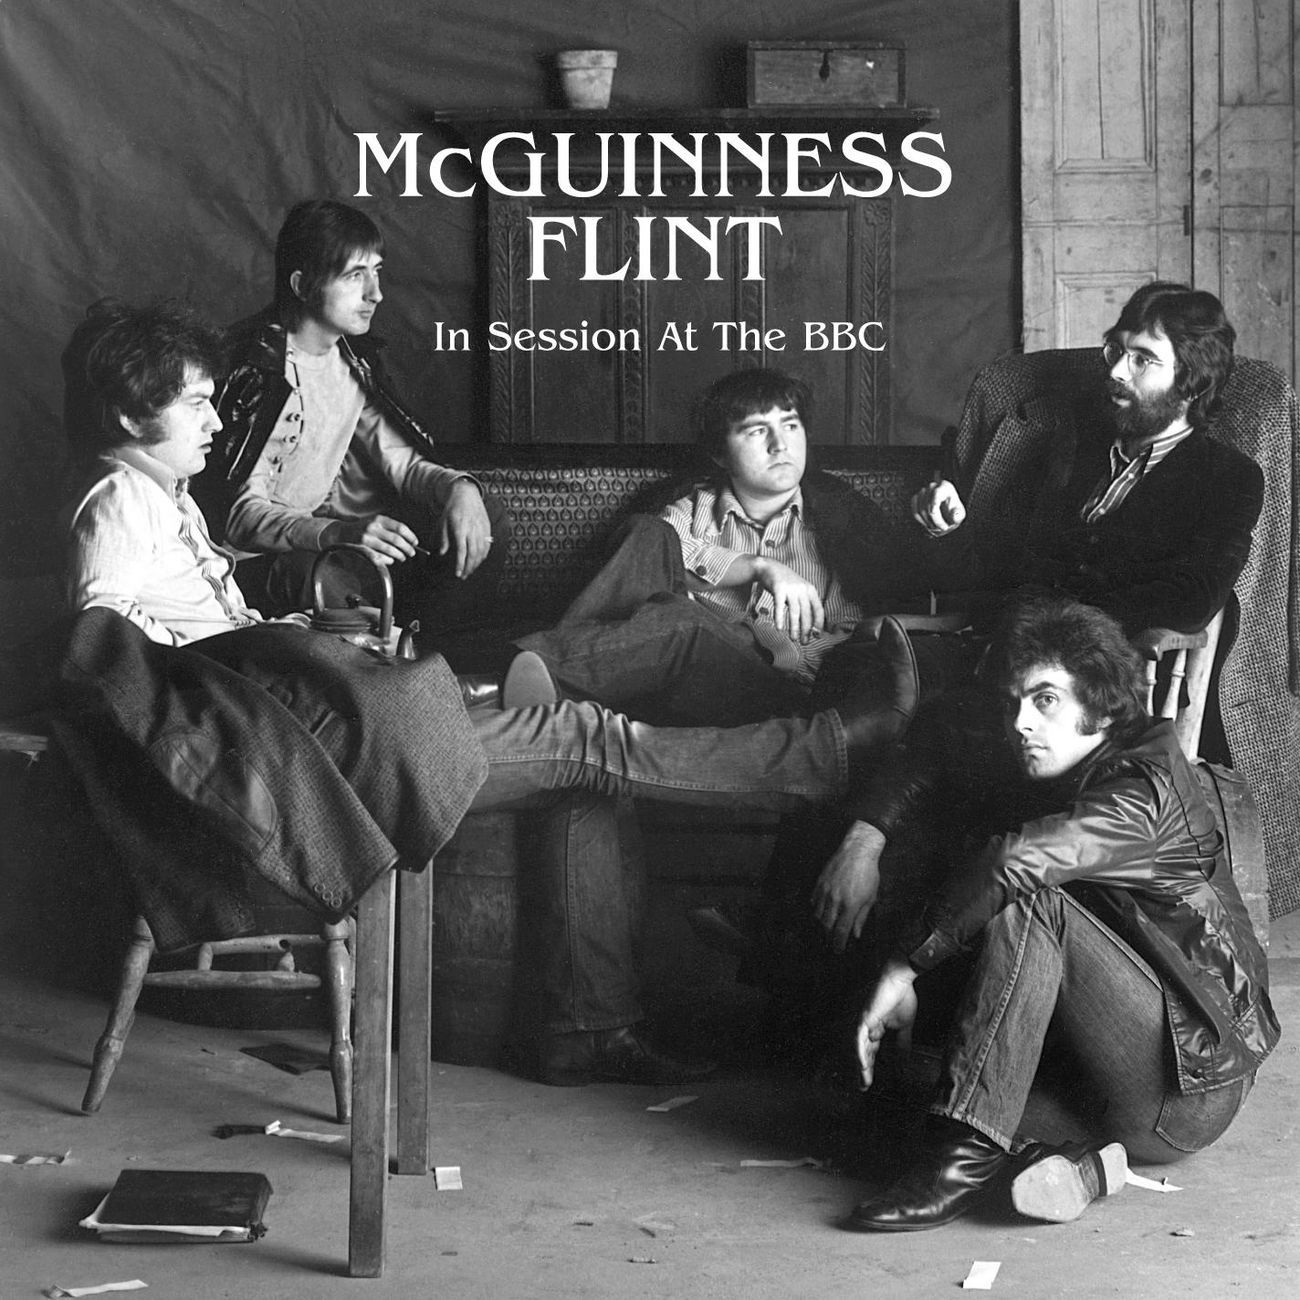 Mcguinness Flint Was A Rock Band Formed In 1970 By Tom Mcguinness Former Bassist And Guitarist With Manfred Mann And Uk Singles Chart Rock Bands Songwriting